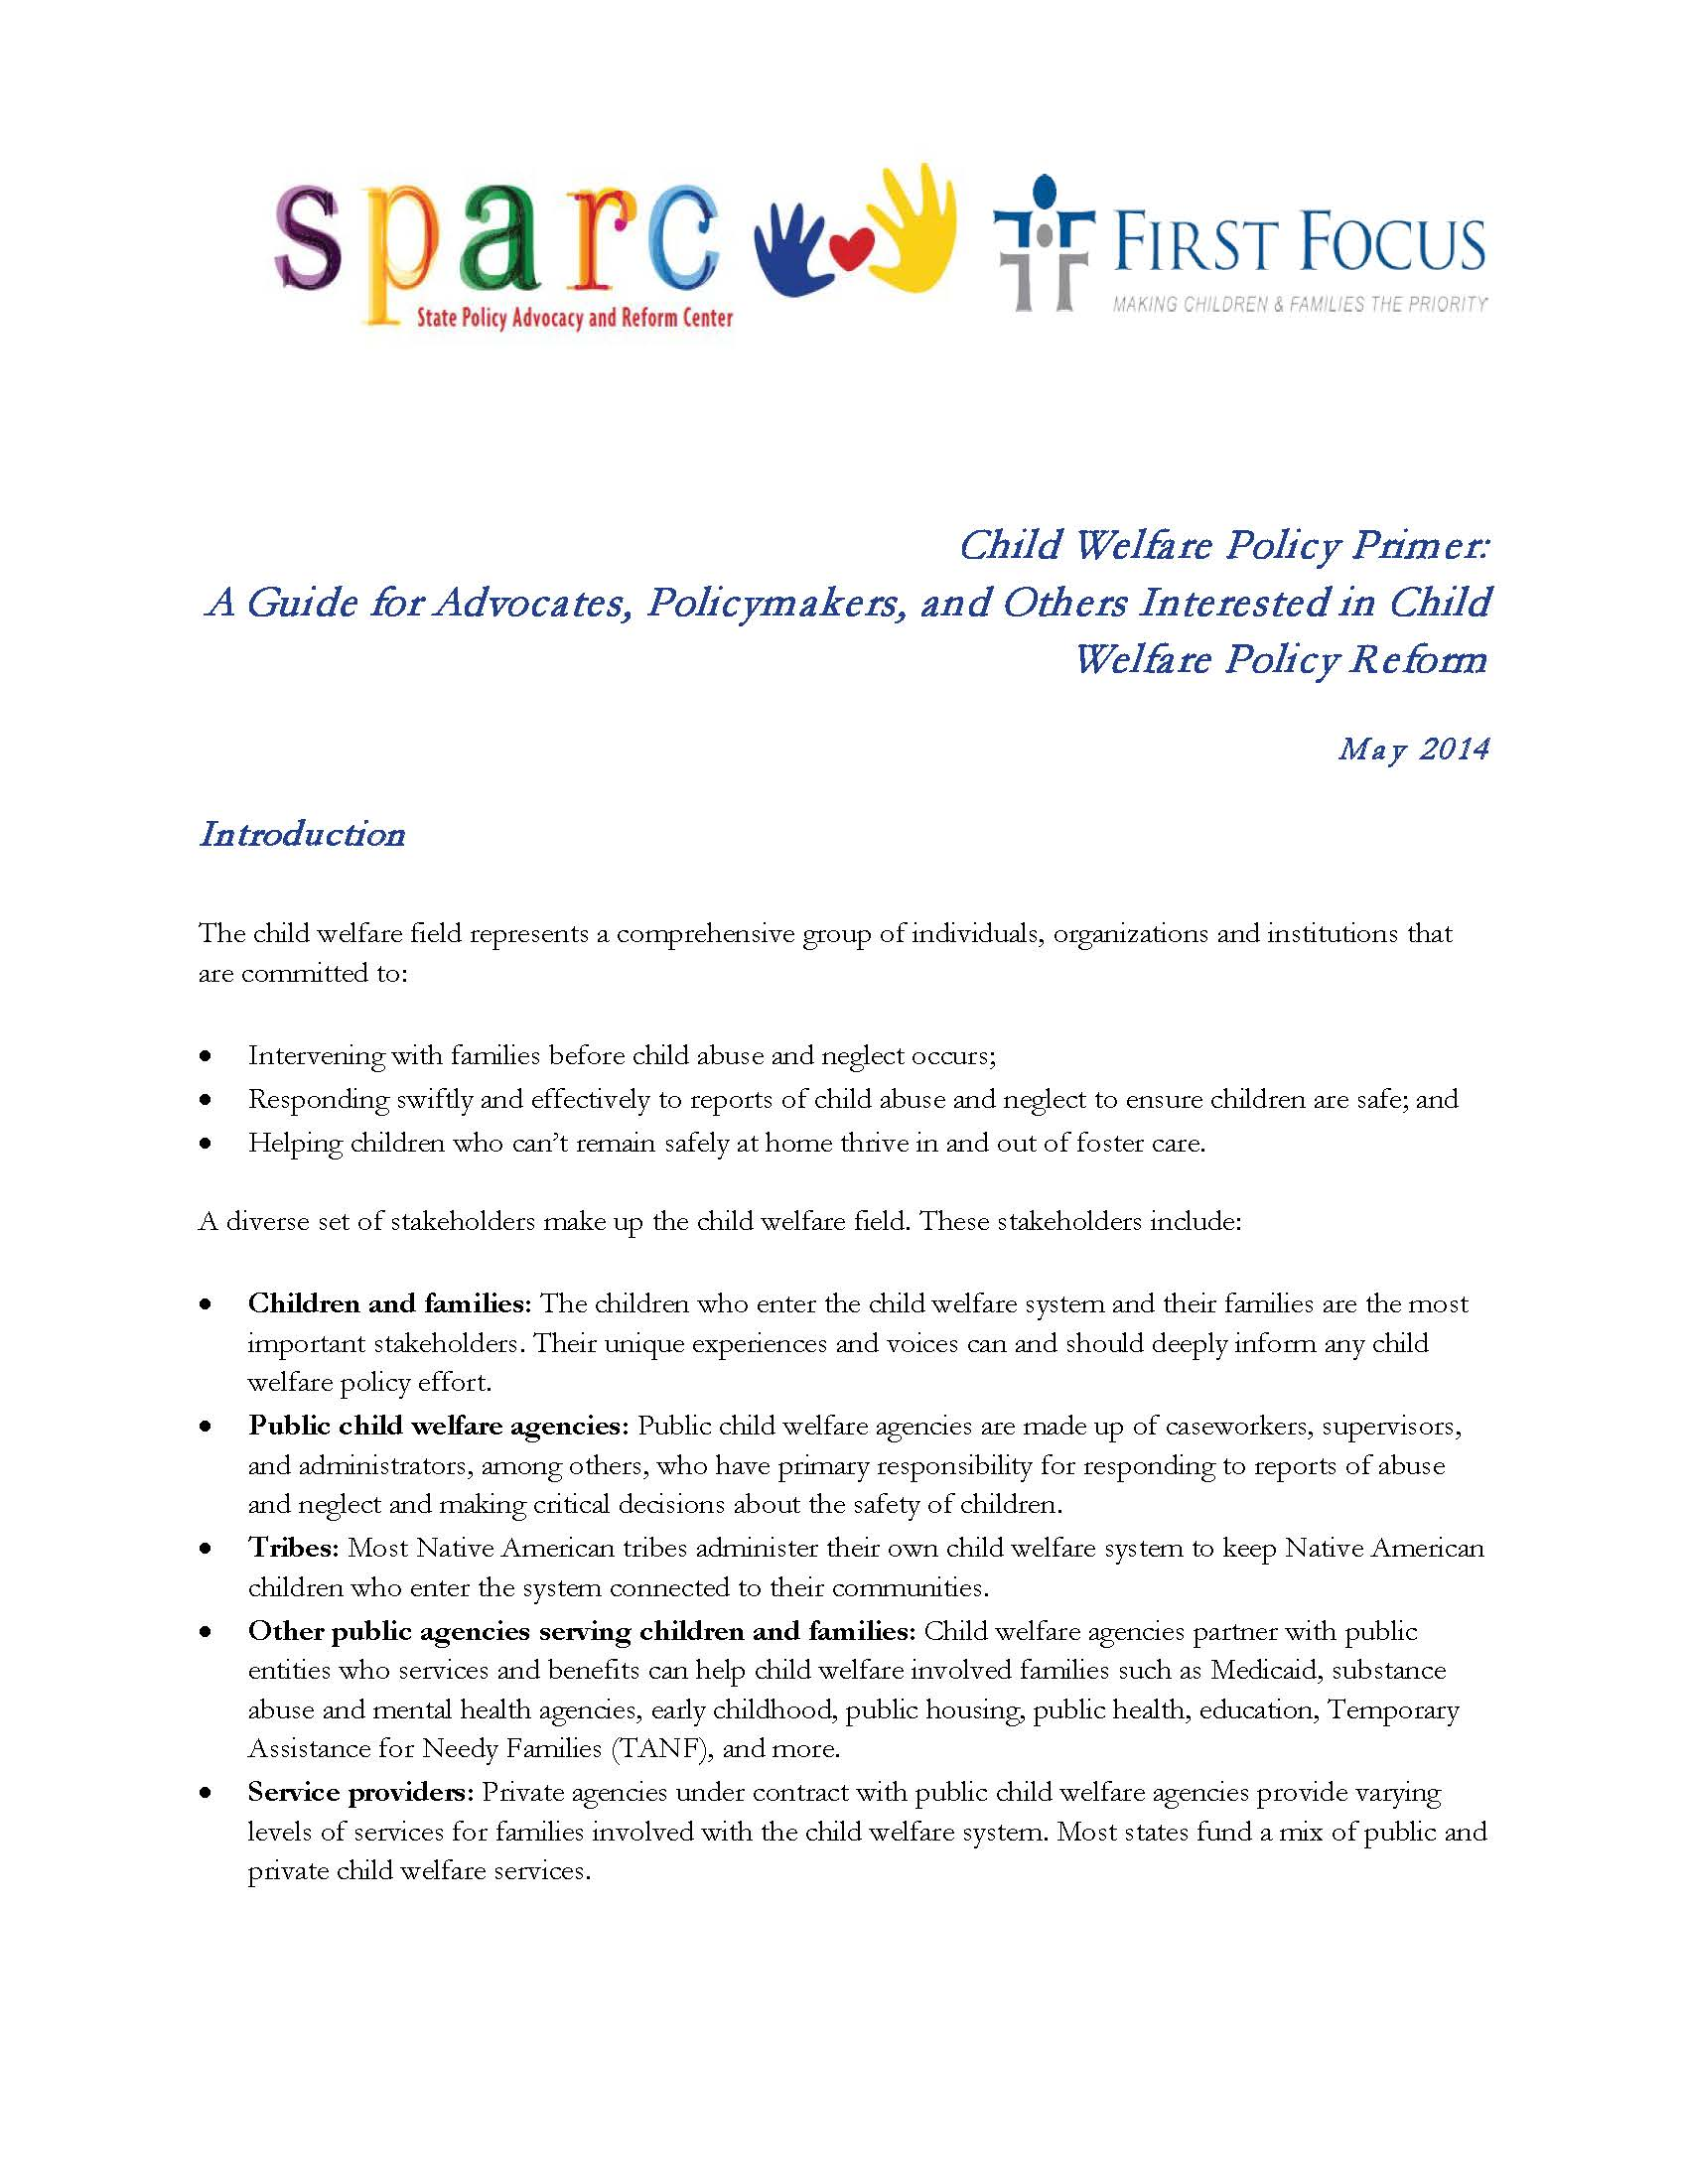 Child Welfare Policy Primer: A Guide for Advocates, Policymakers, and Others Interested in Child Welfare Policy Reform